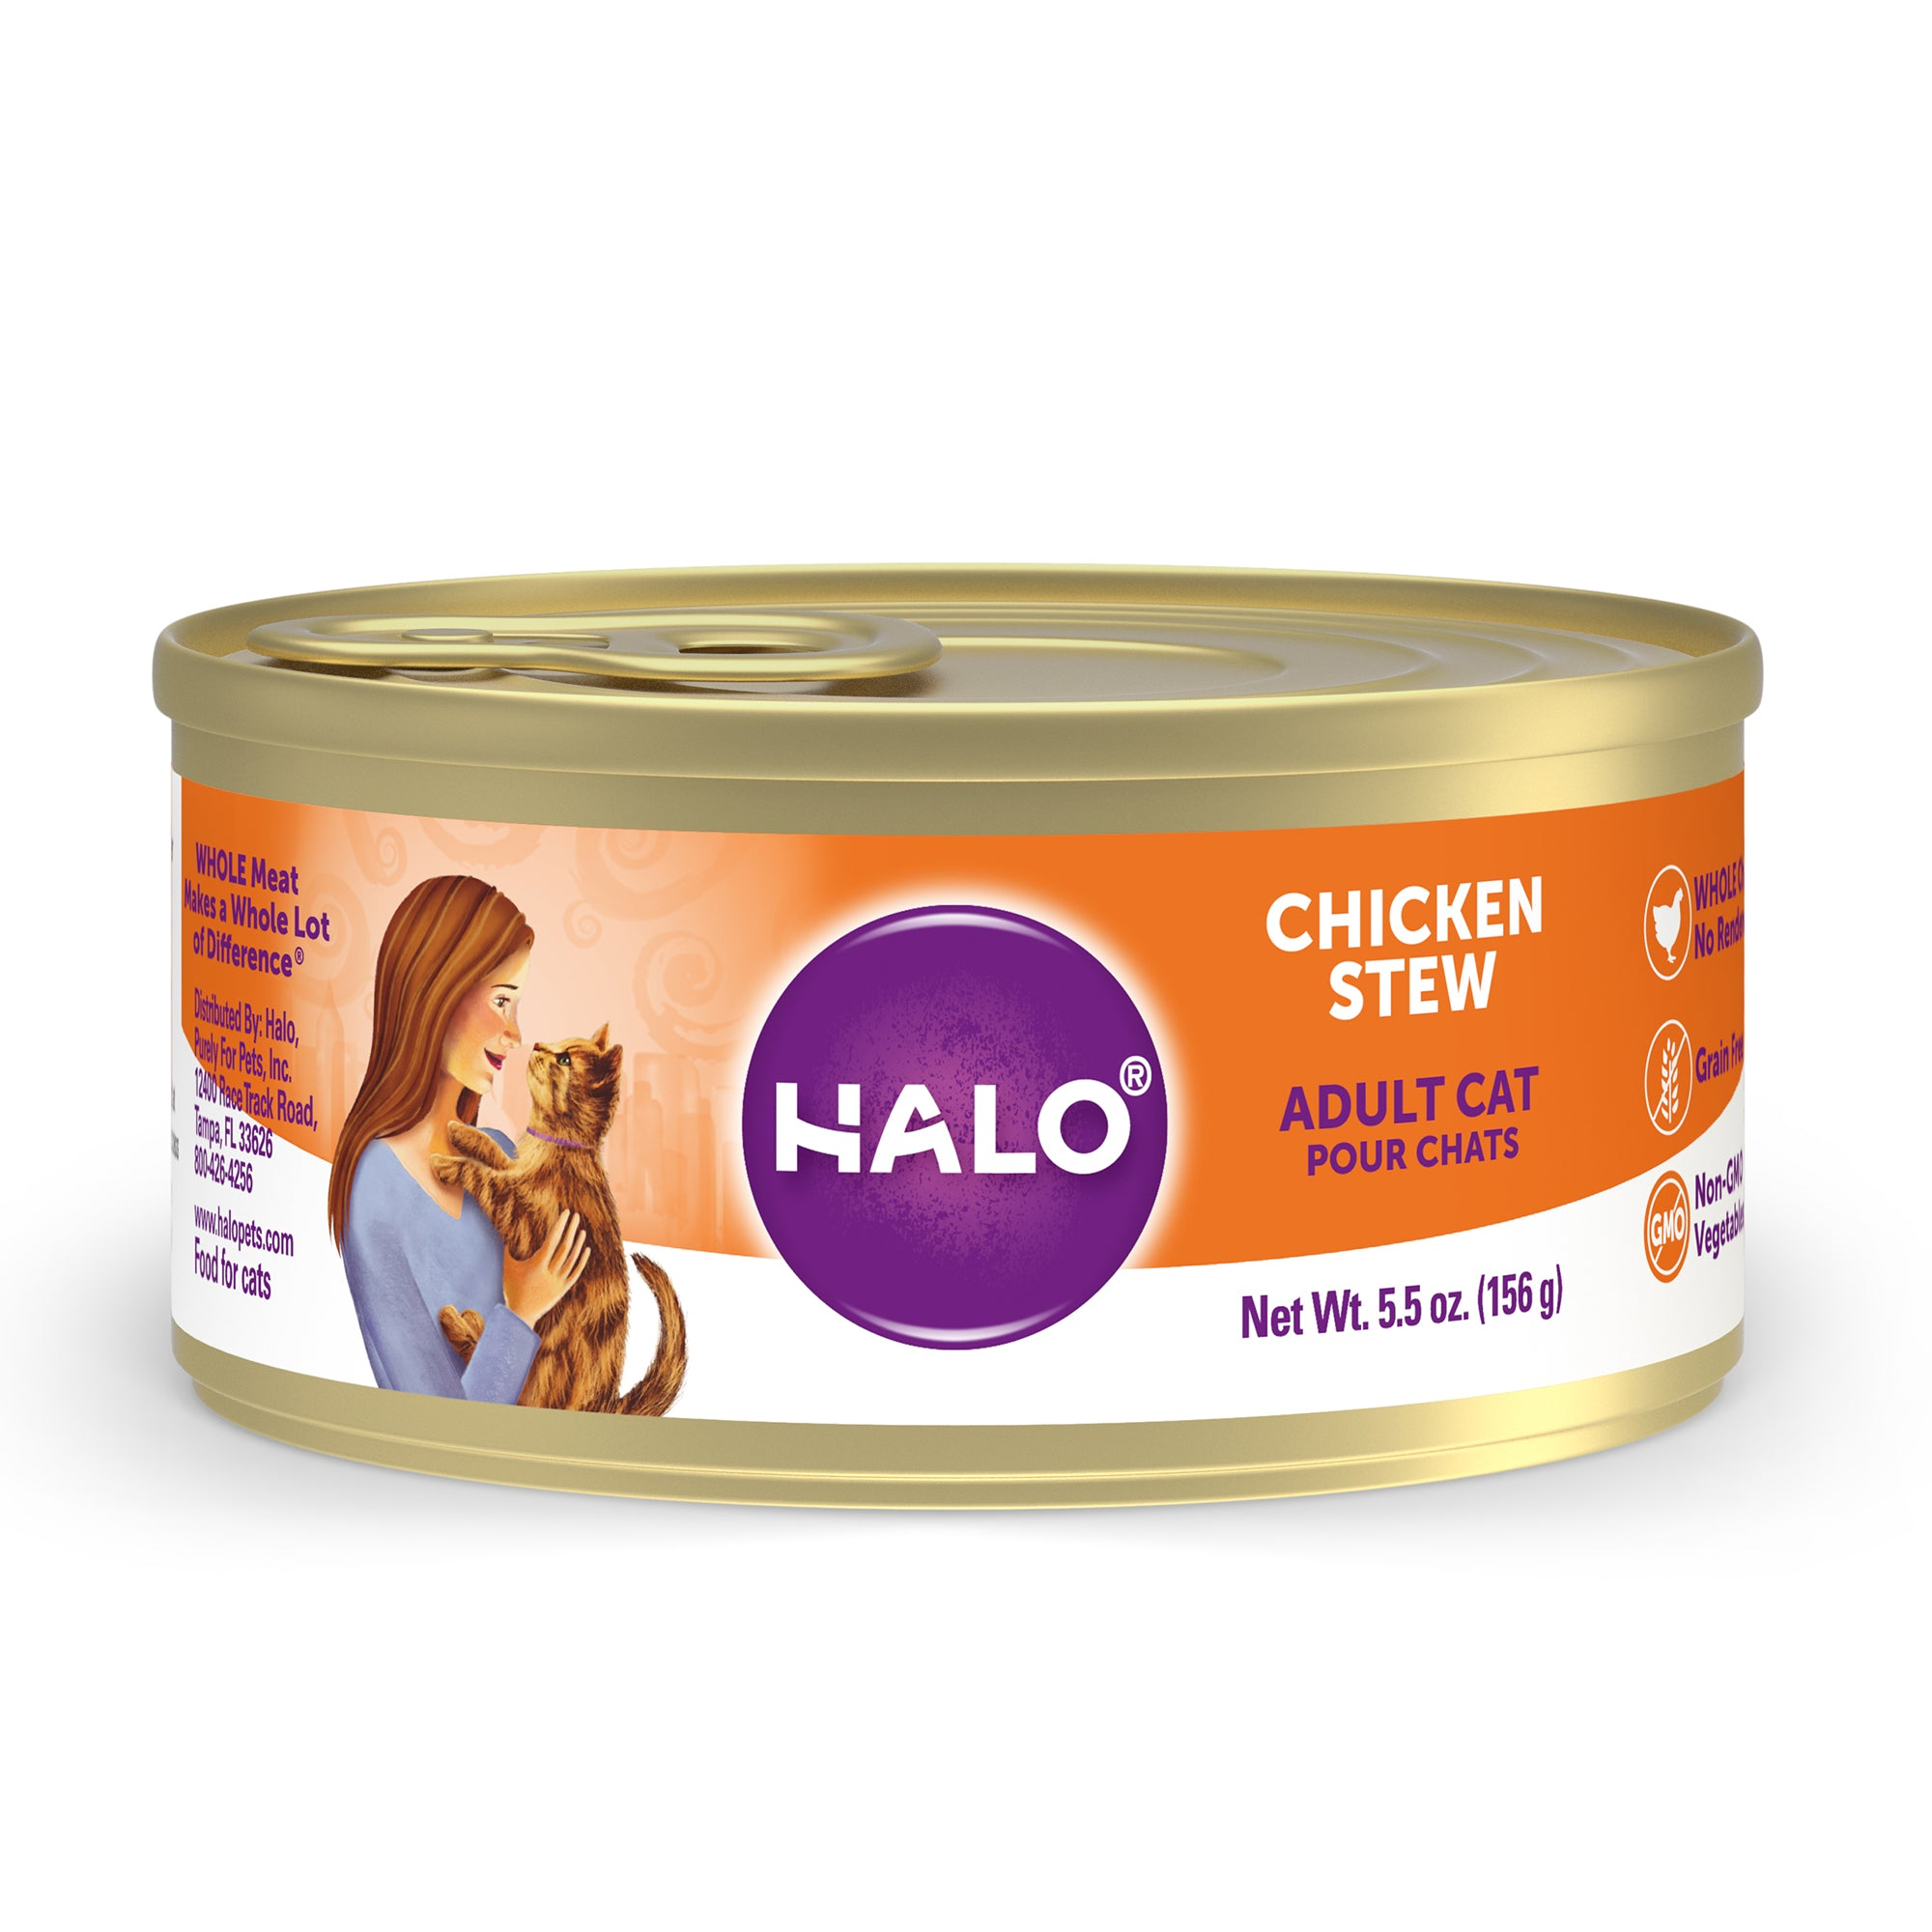 Halo Adult Cat Grain Free Chicken Stew Halo Pets